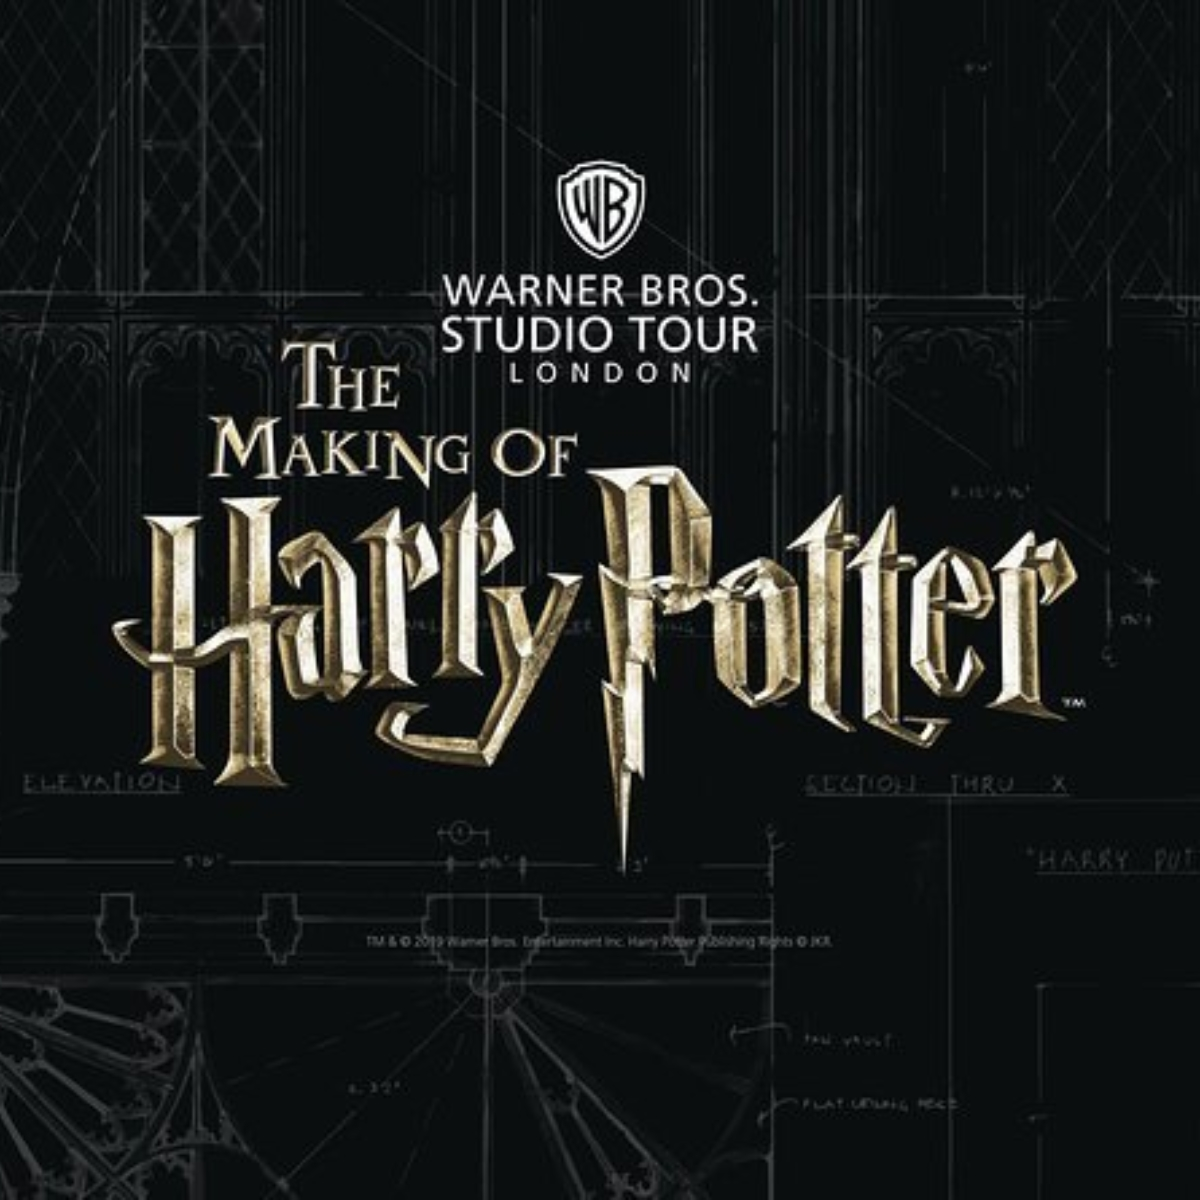 Warner Bros. Studio Tour From London - The Making of Harry Potter Images